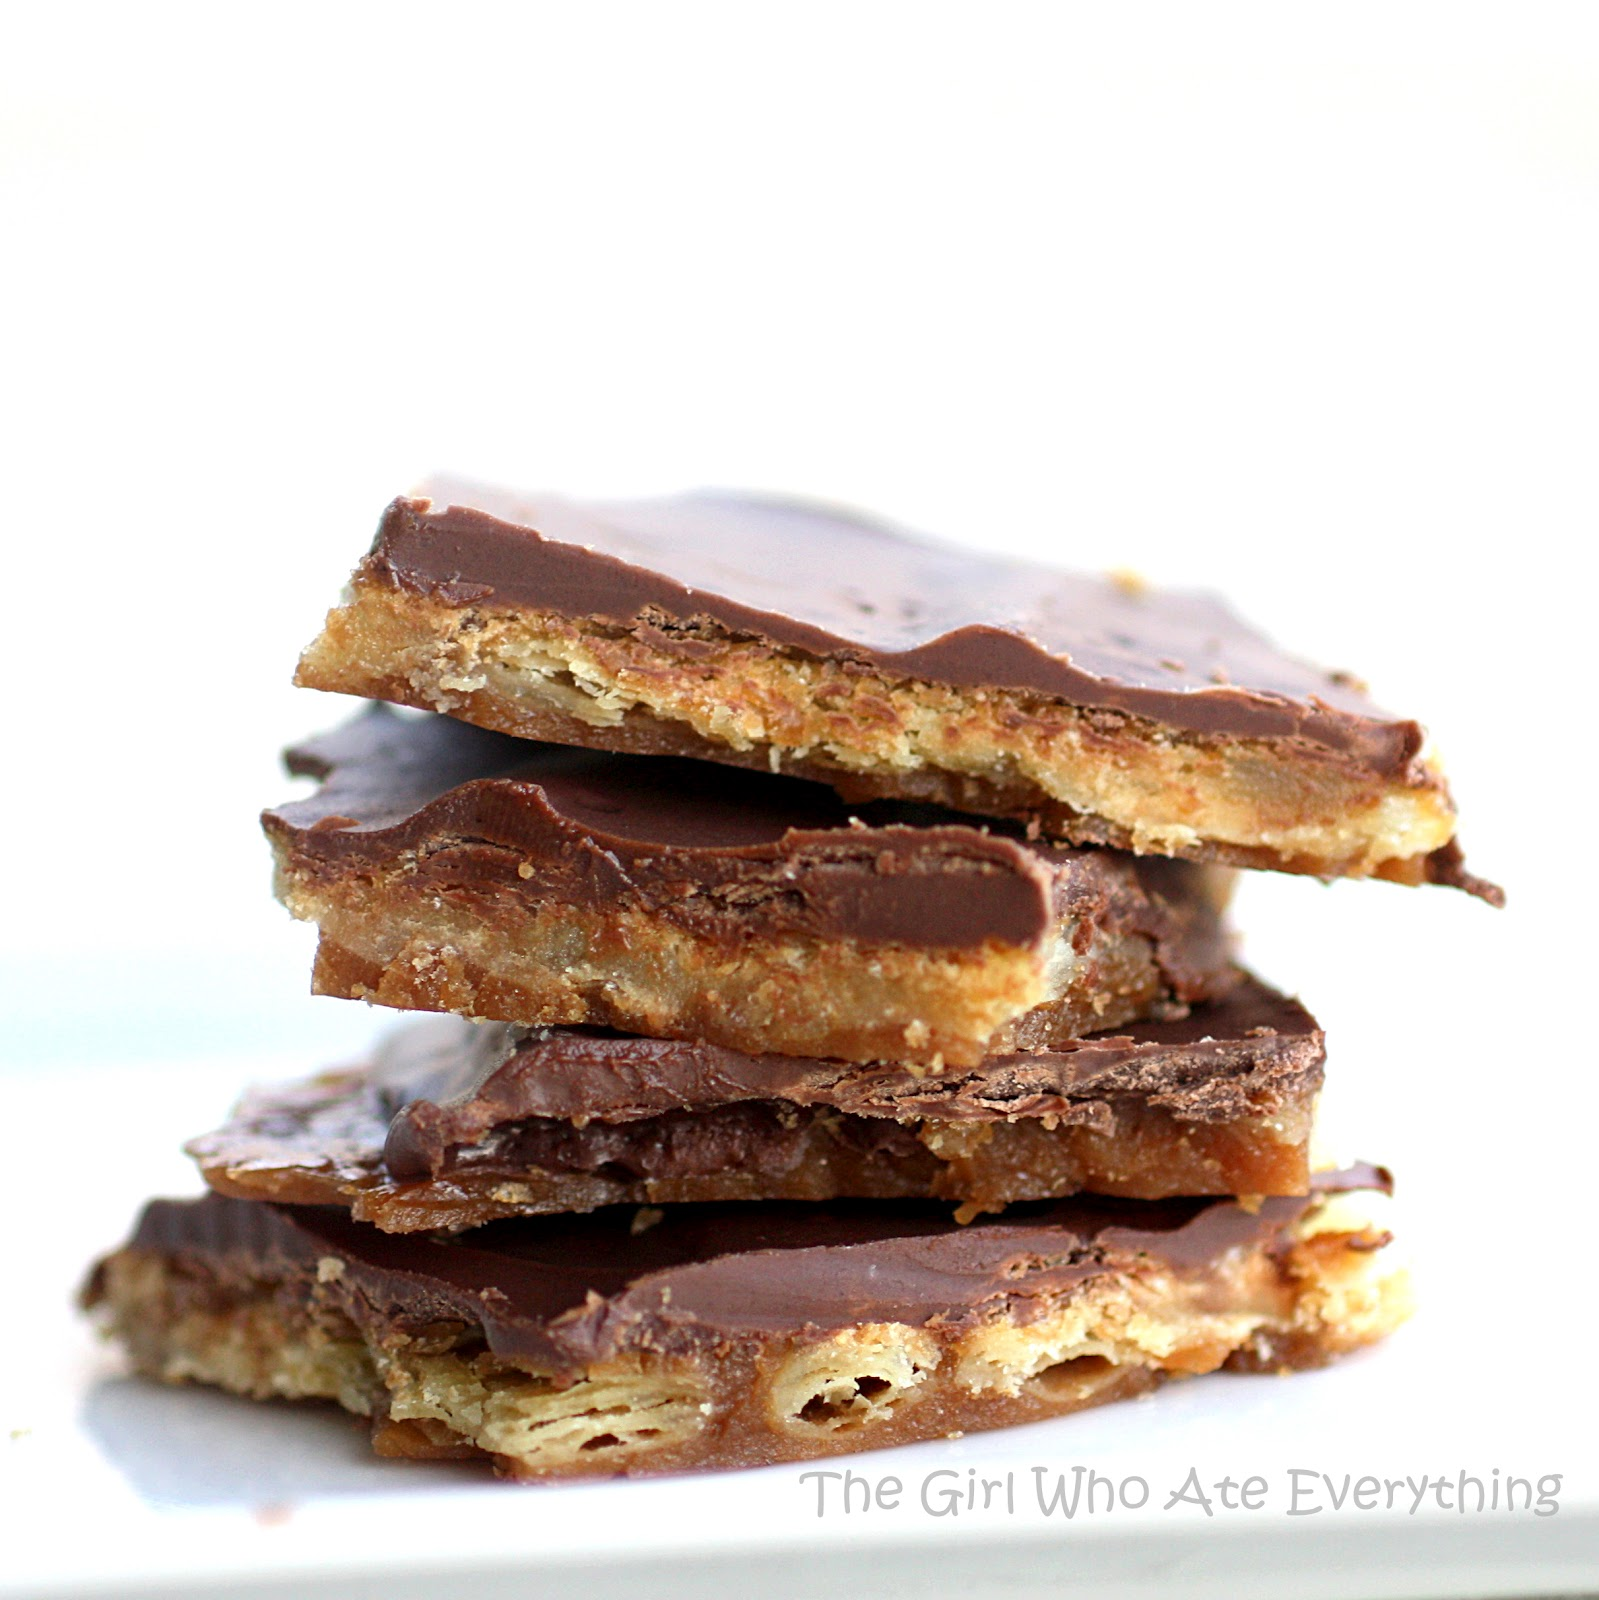 saltine-cracker-toffee-wm.jpg (1599×1600)